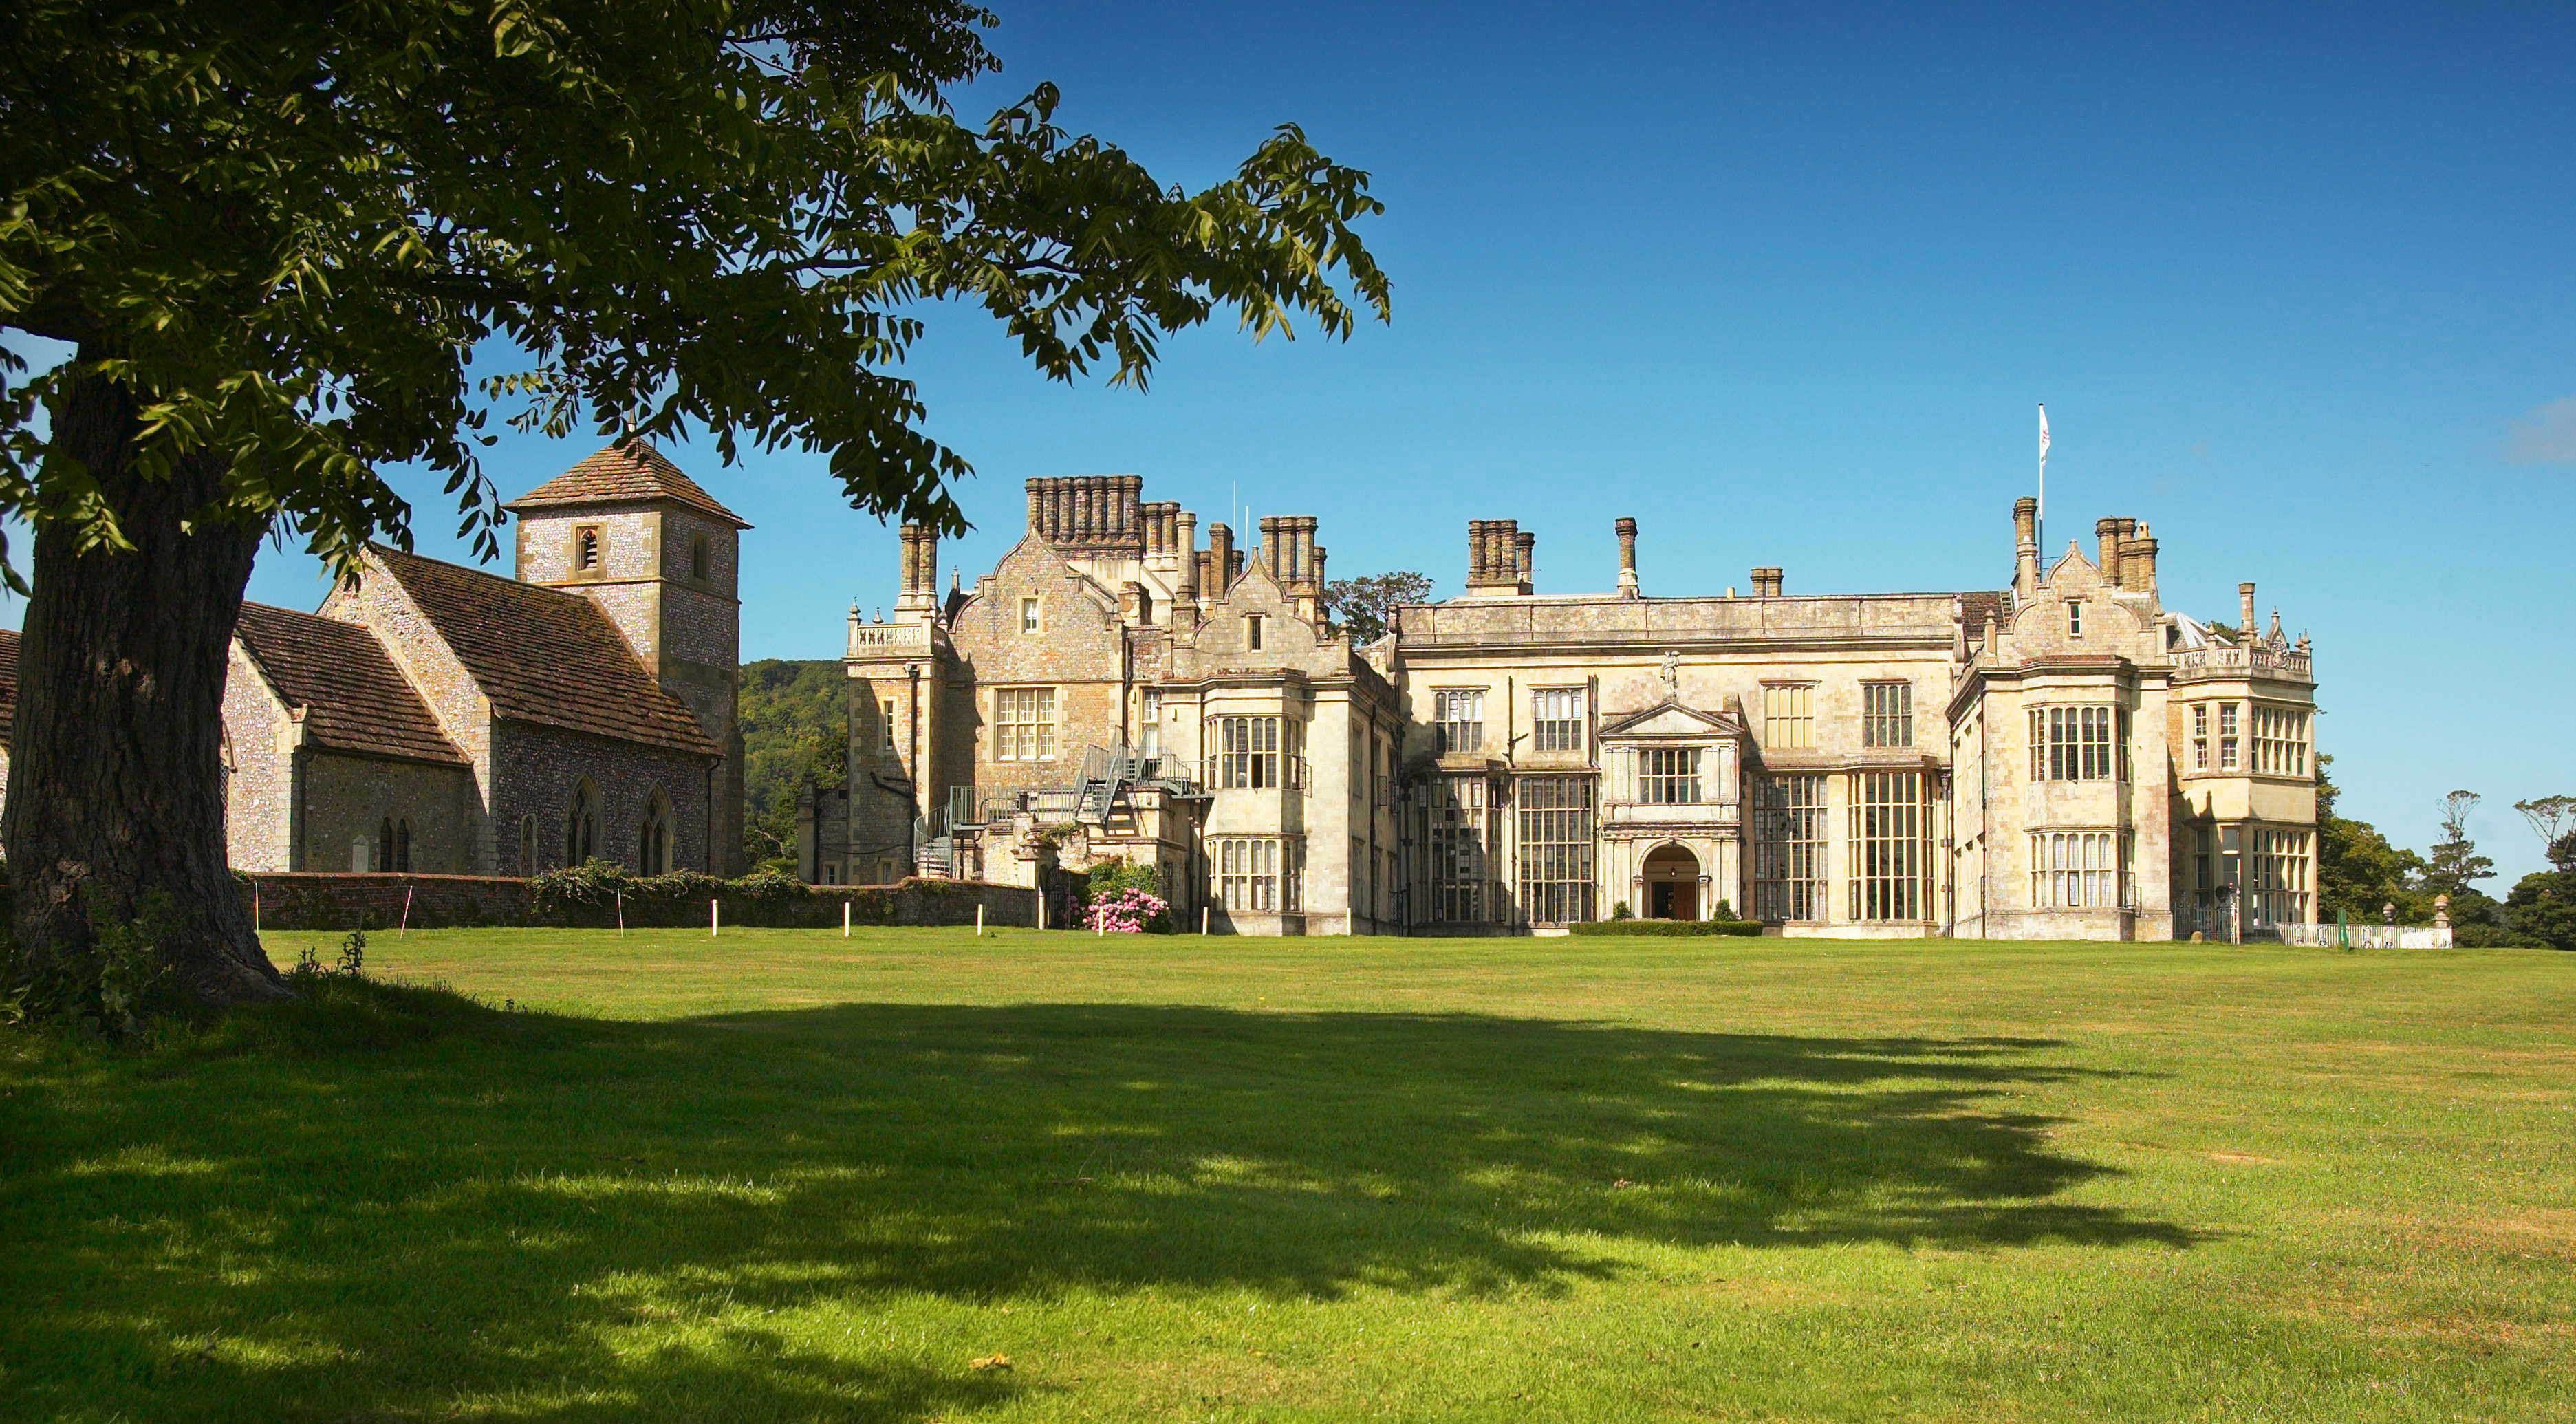 https://www.wiltonpark.org.uk/your-stay-at-wilton-park/